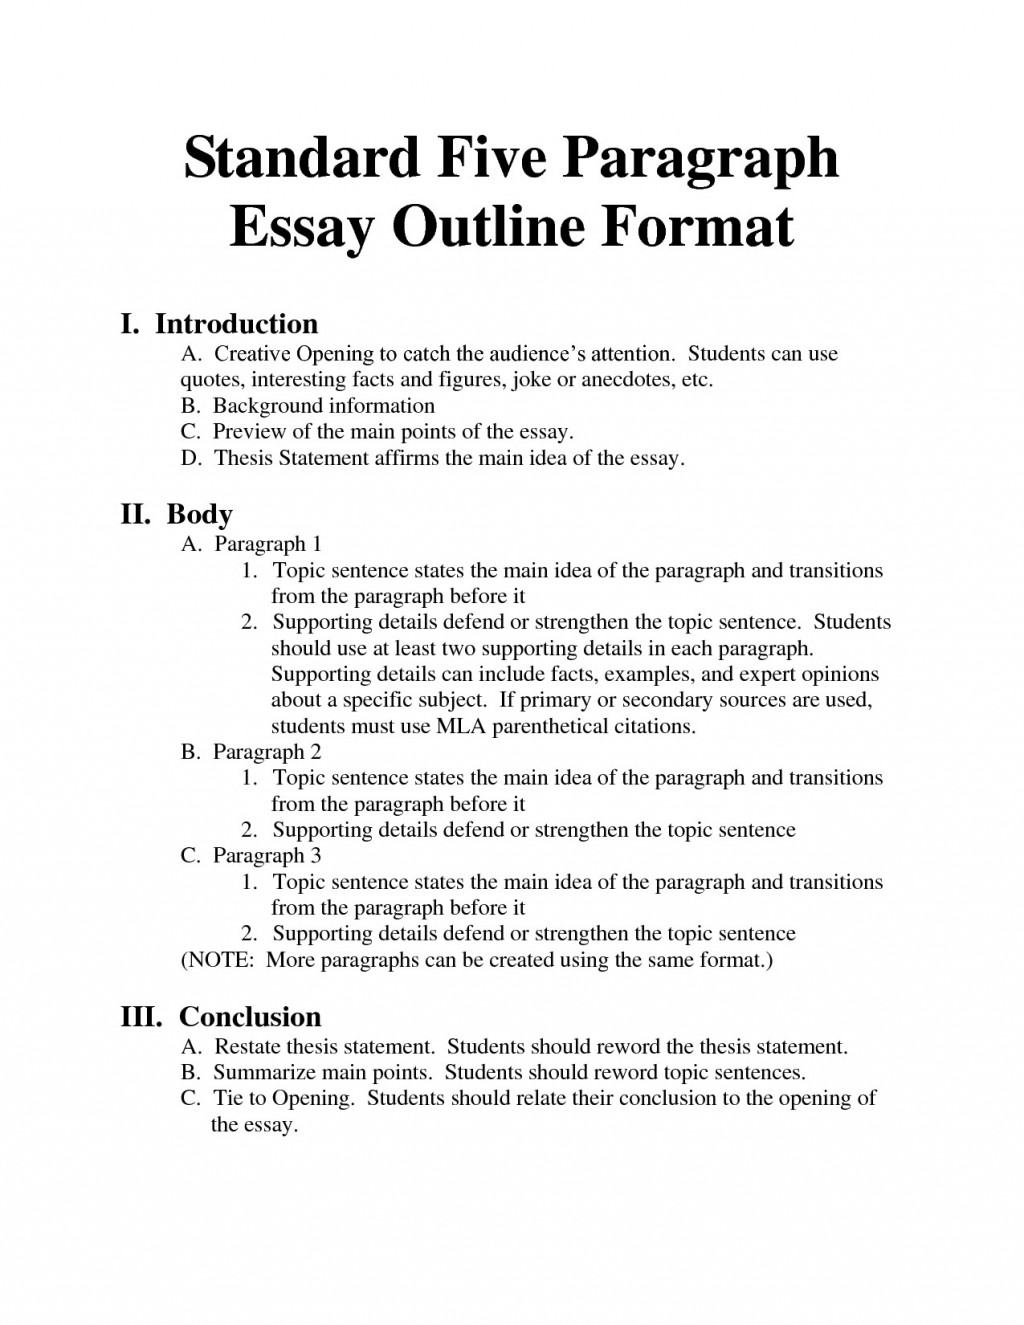 004 Argumentative Essays For College Refrence Template In Persuasive Level Exceptional Essay Examples Topics Large